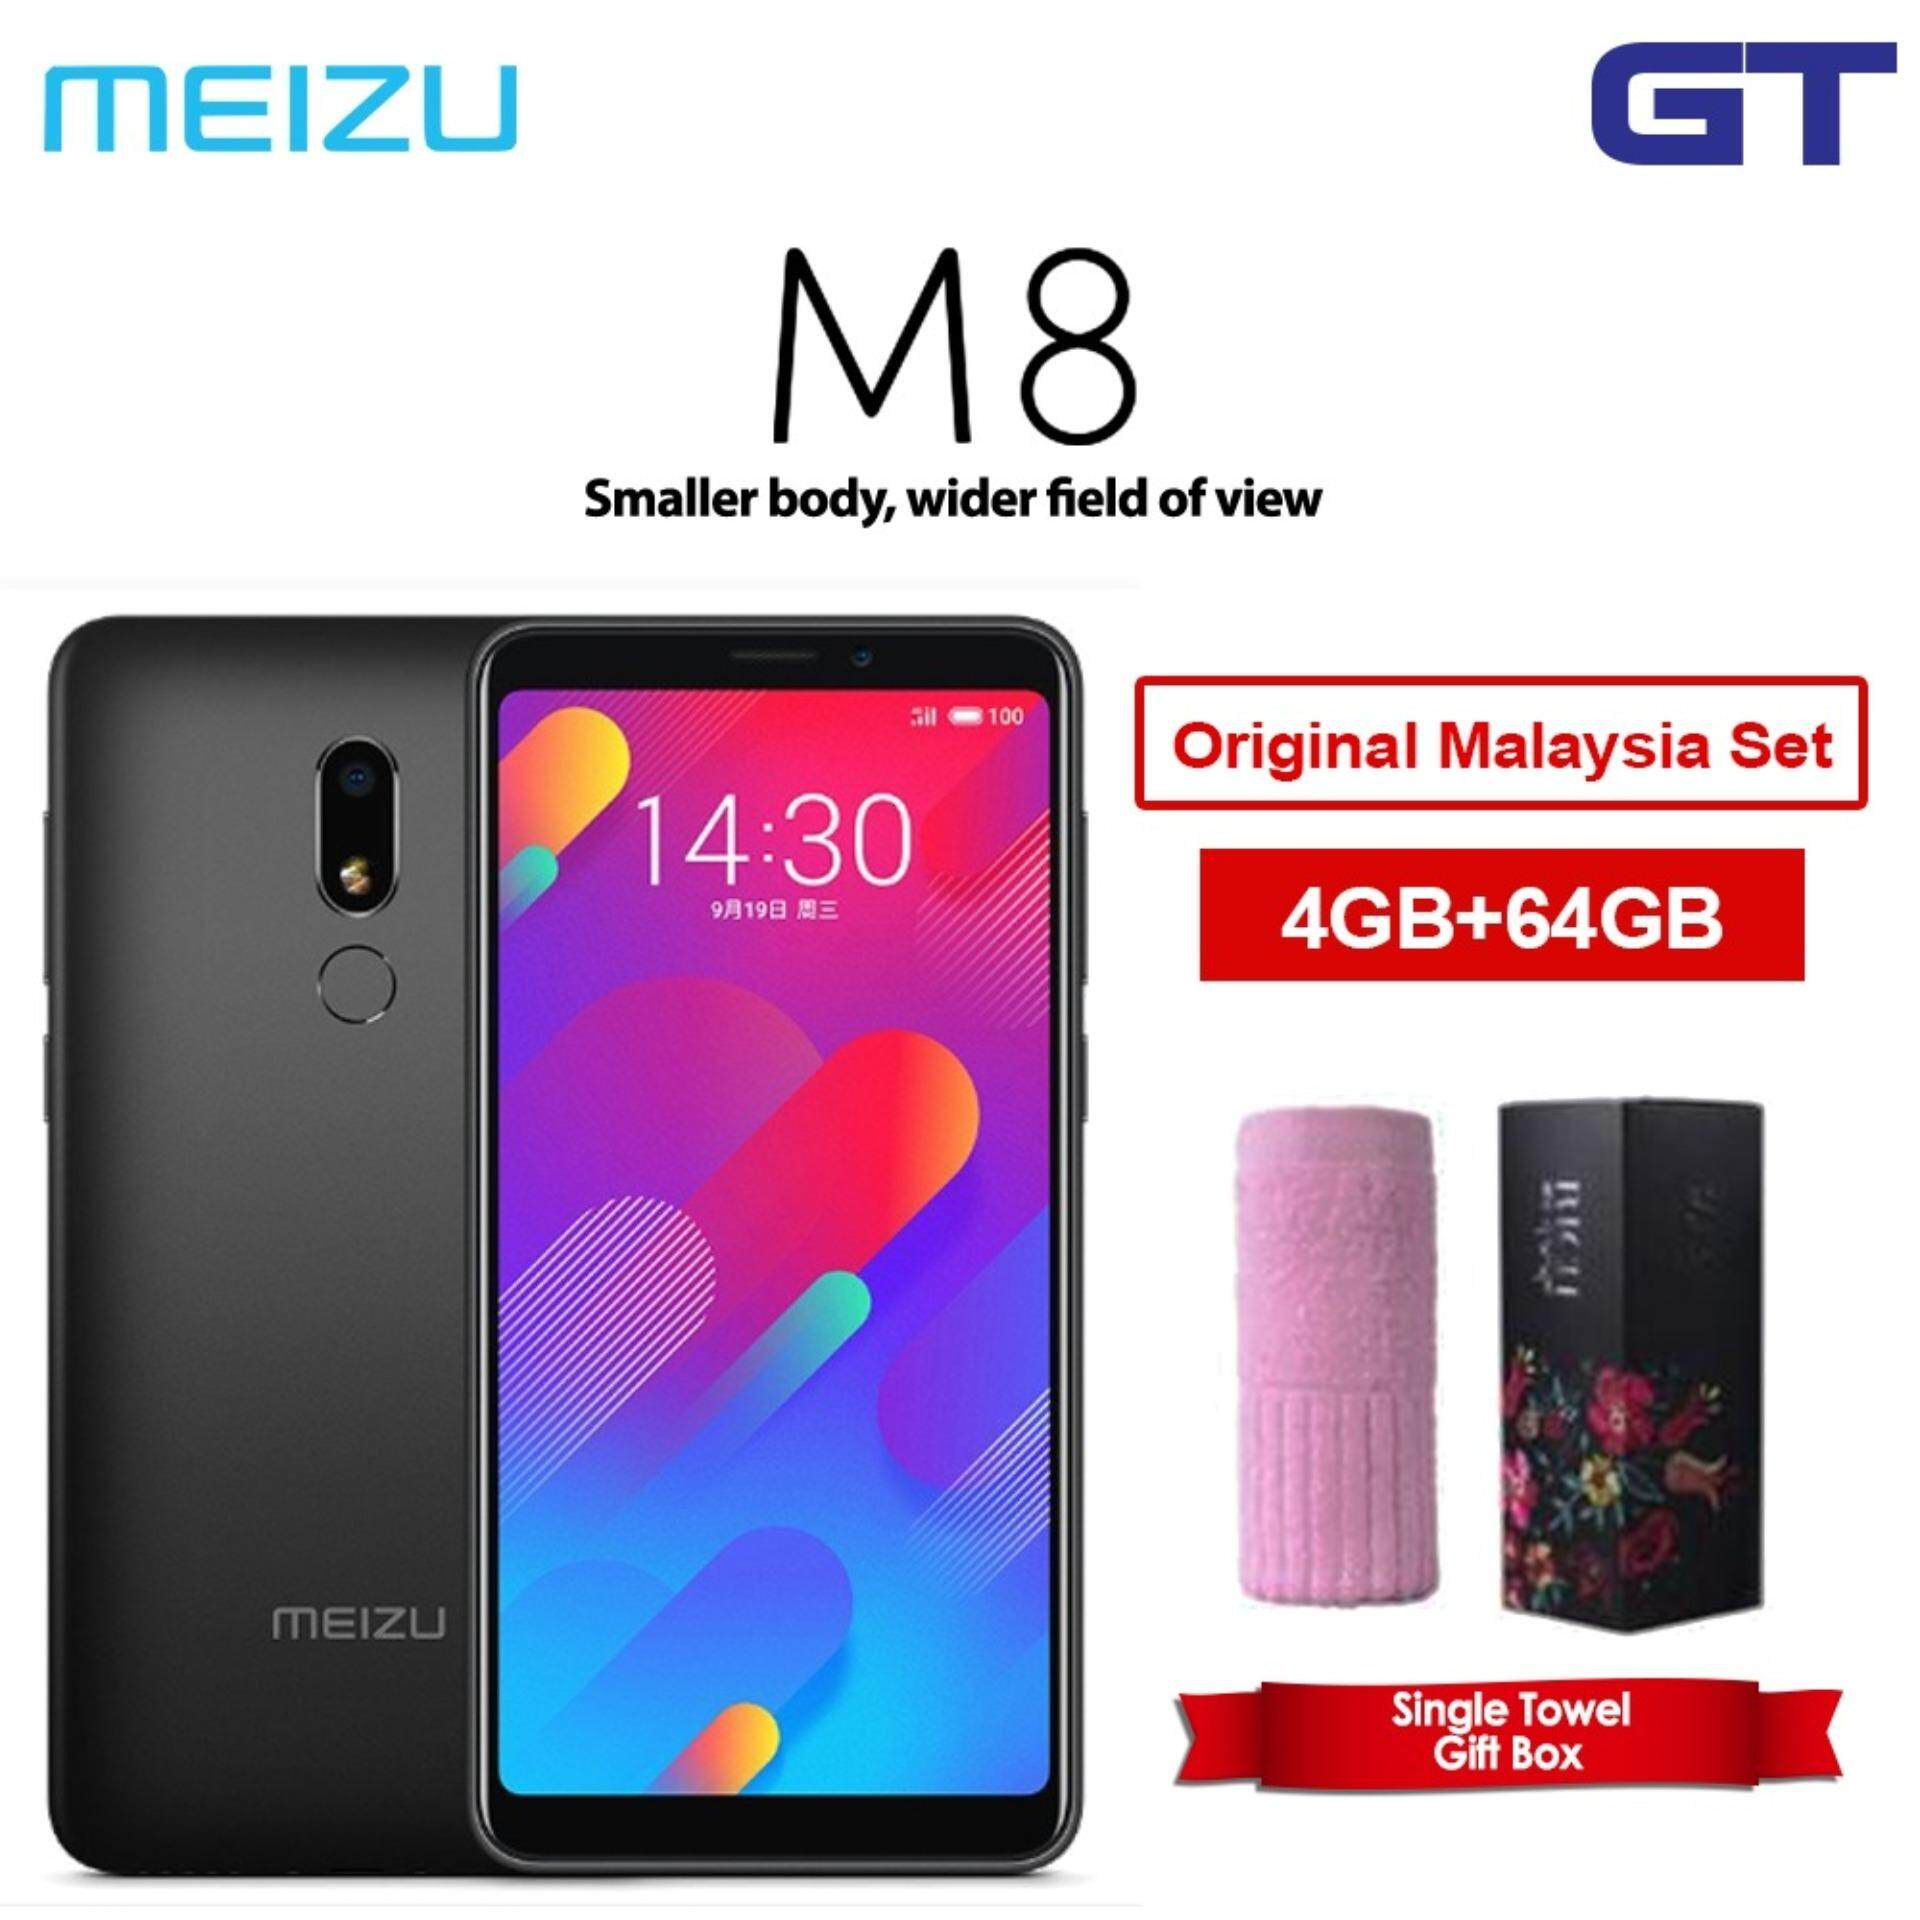 Branded Meizu Mobiles Phones With best Price iN Malaysia